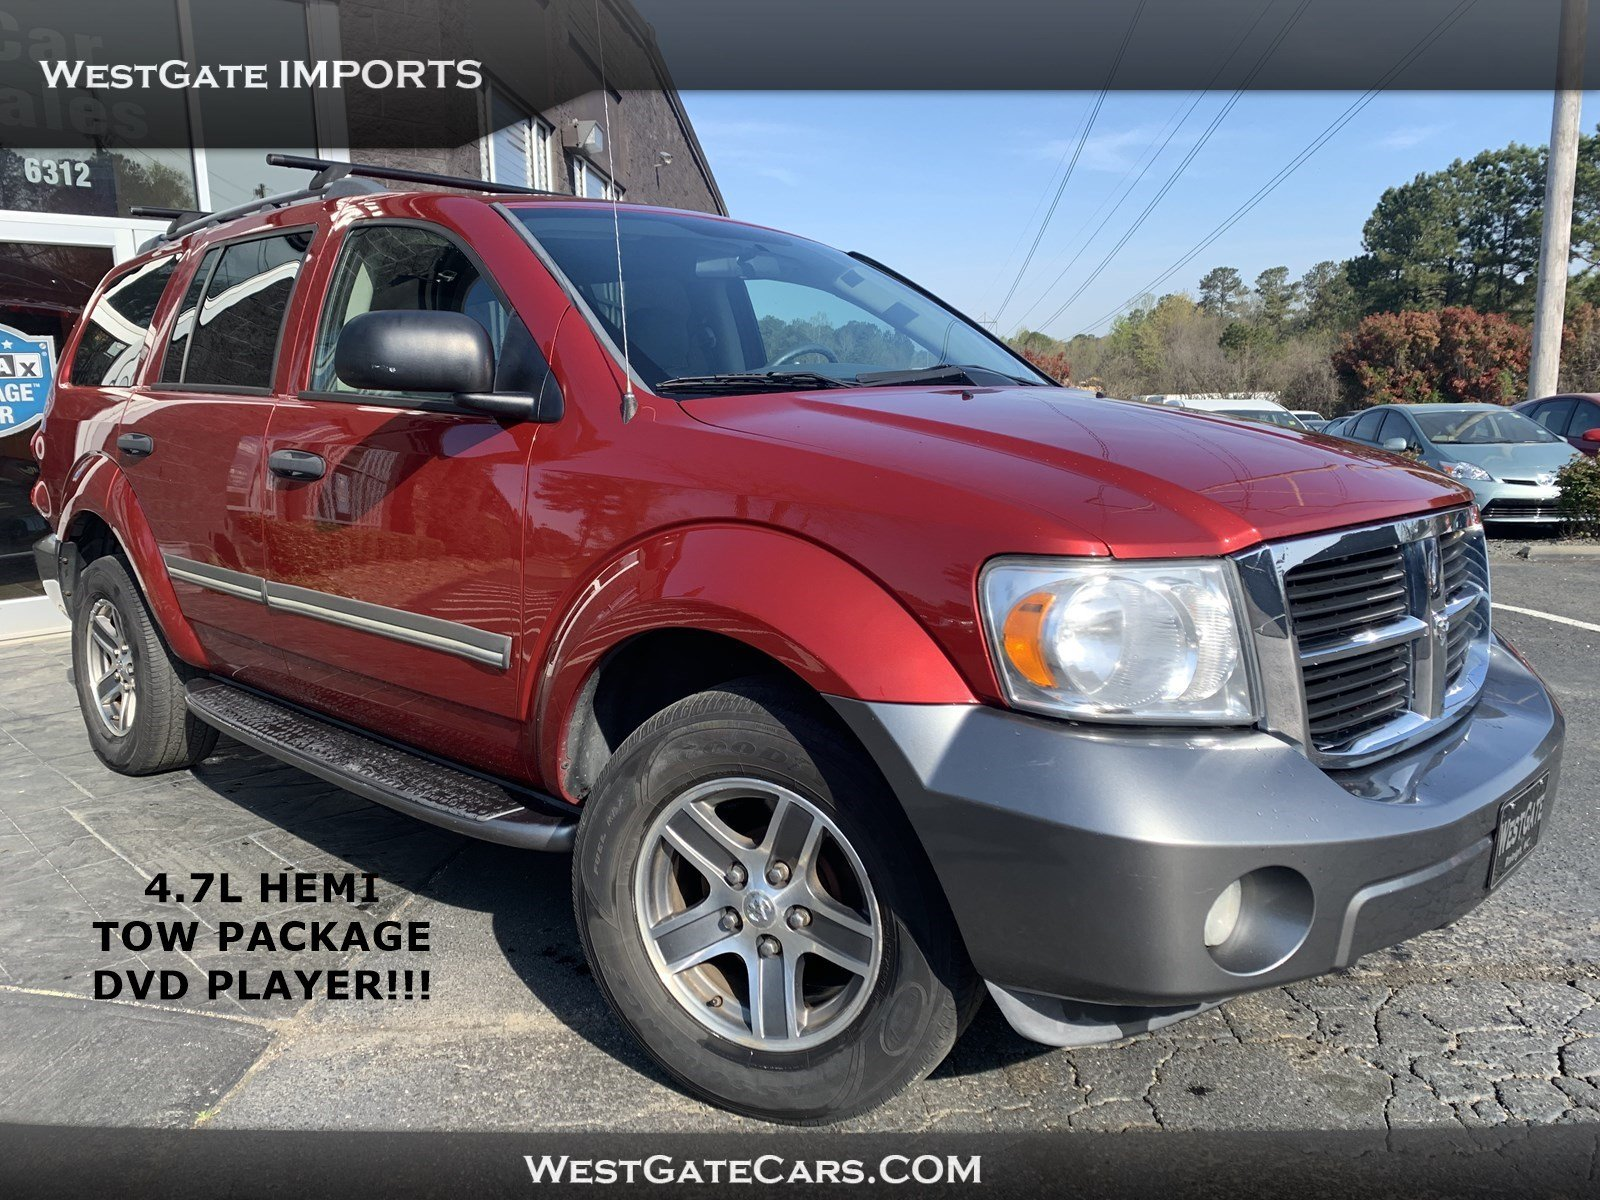 Used 2008 Dodge Durango Adventurer for sale in Raleigh,NC